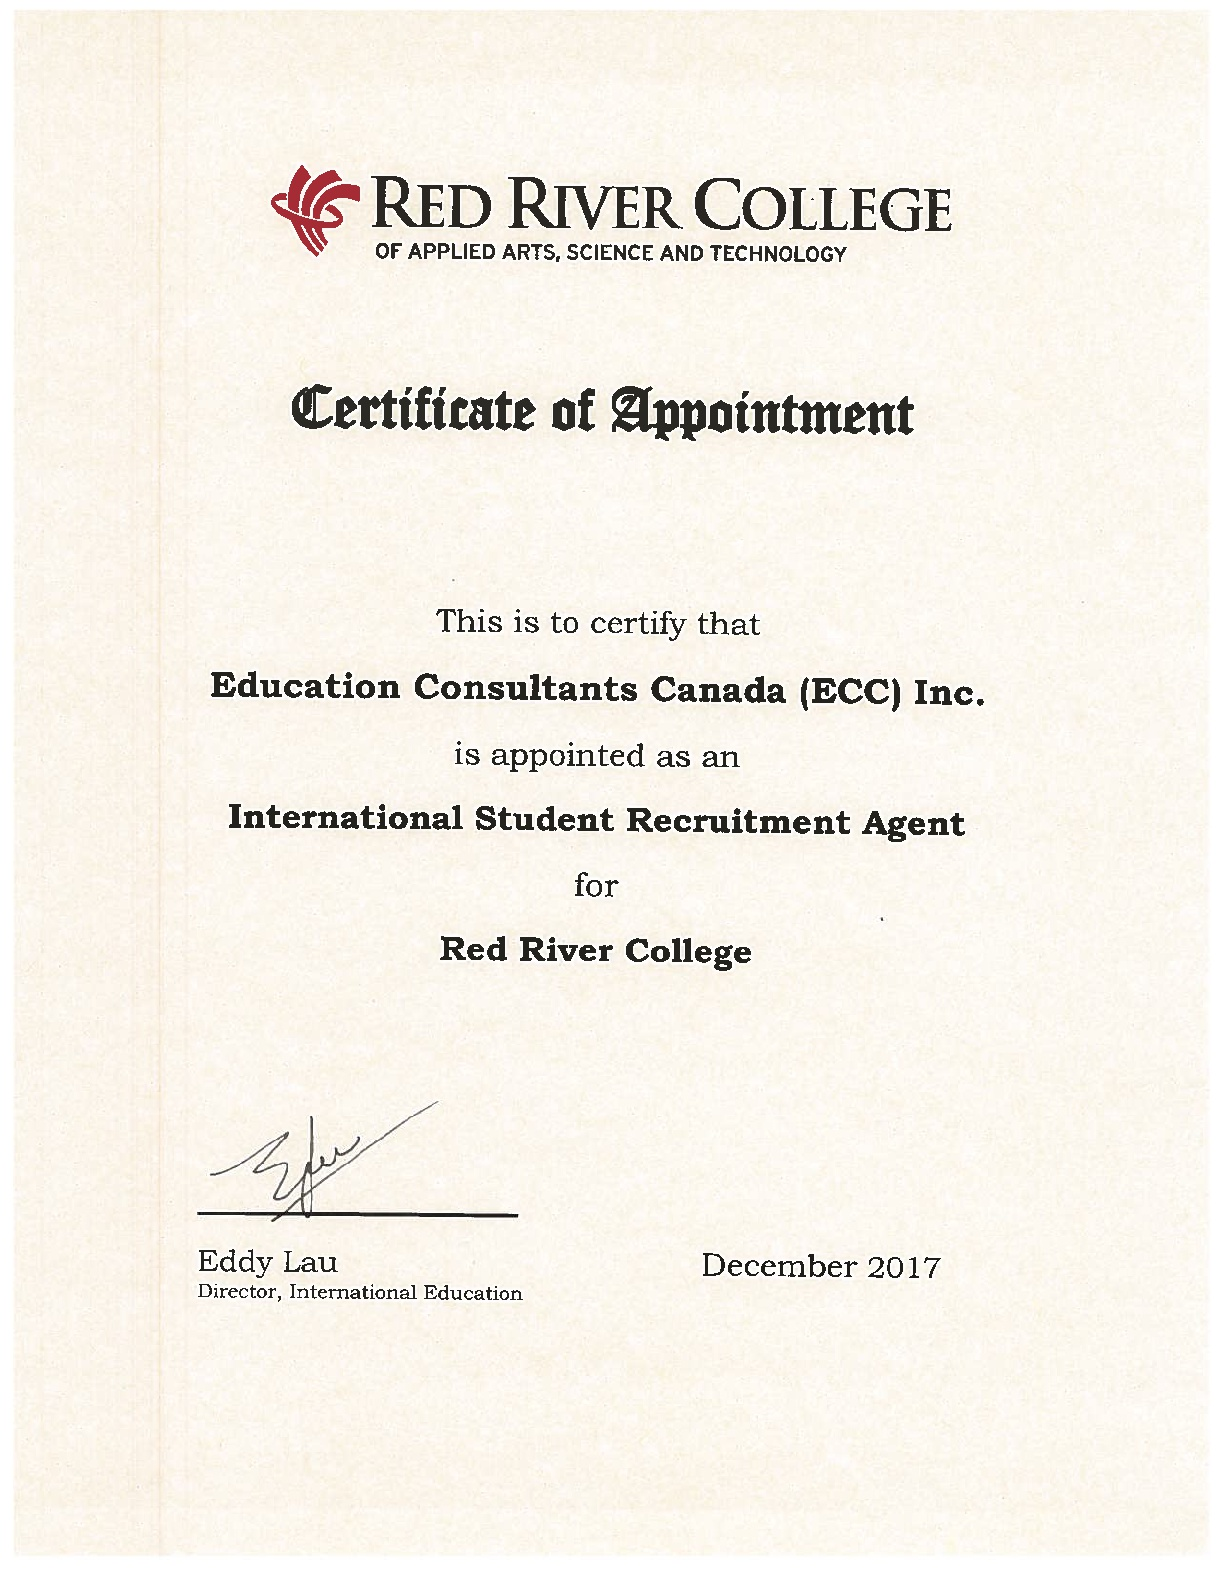 Education Consultants Canada Certified by Red River College for the student's recruitment